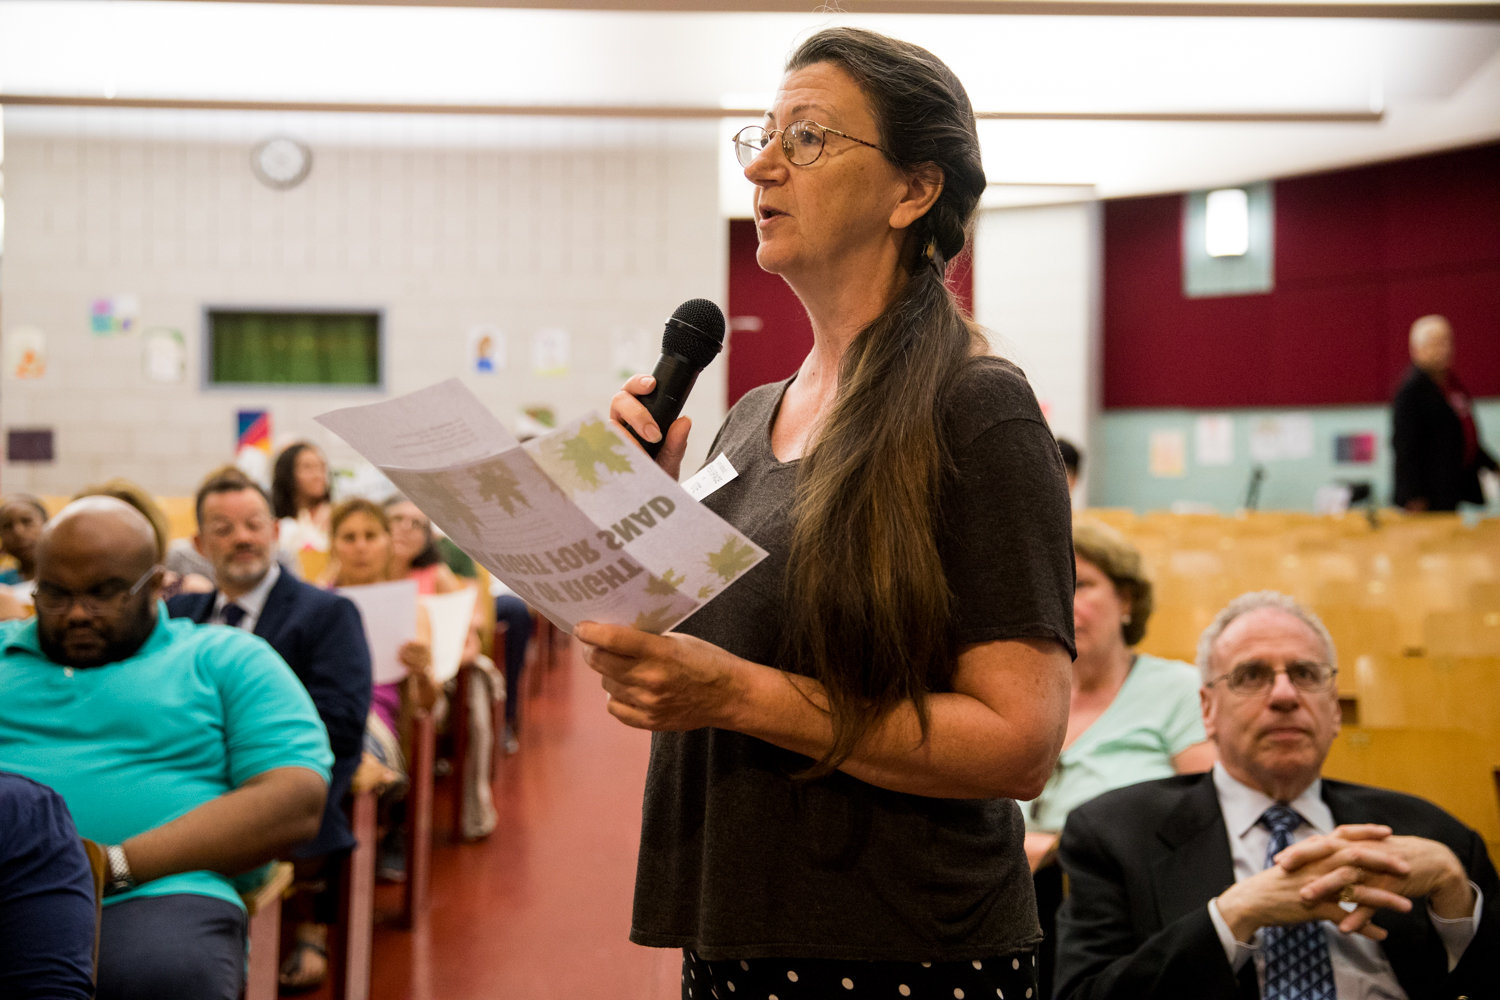 Jodie Colón, seen here at a Community Board 8 meeting last June, has been part of the grassroots effort to save the Villa Rosa Bonheur, a historic apartment building on Palisade Avenue in Spuyten Duyvil.